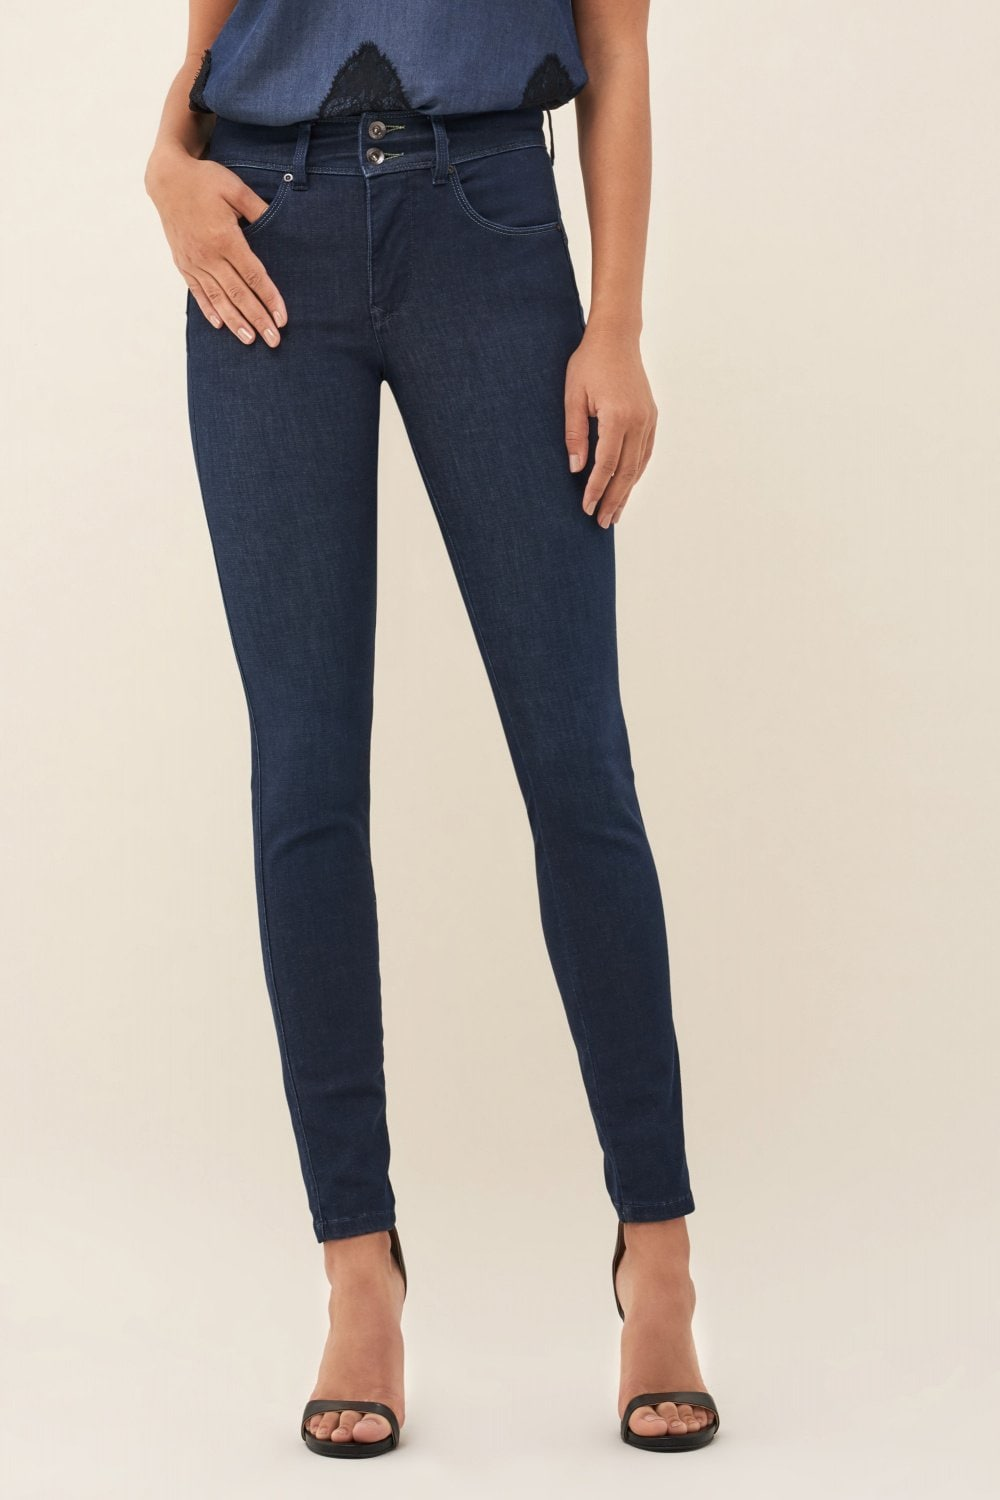 Push In Secret skinny 2GO jeans - Salsa